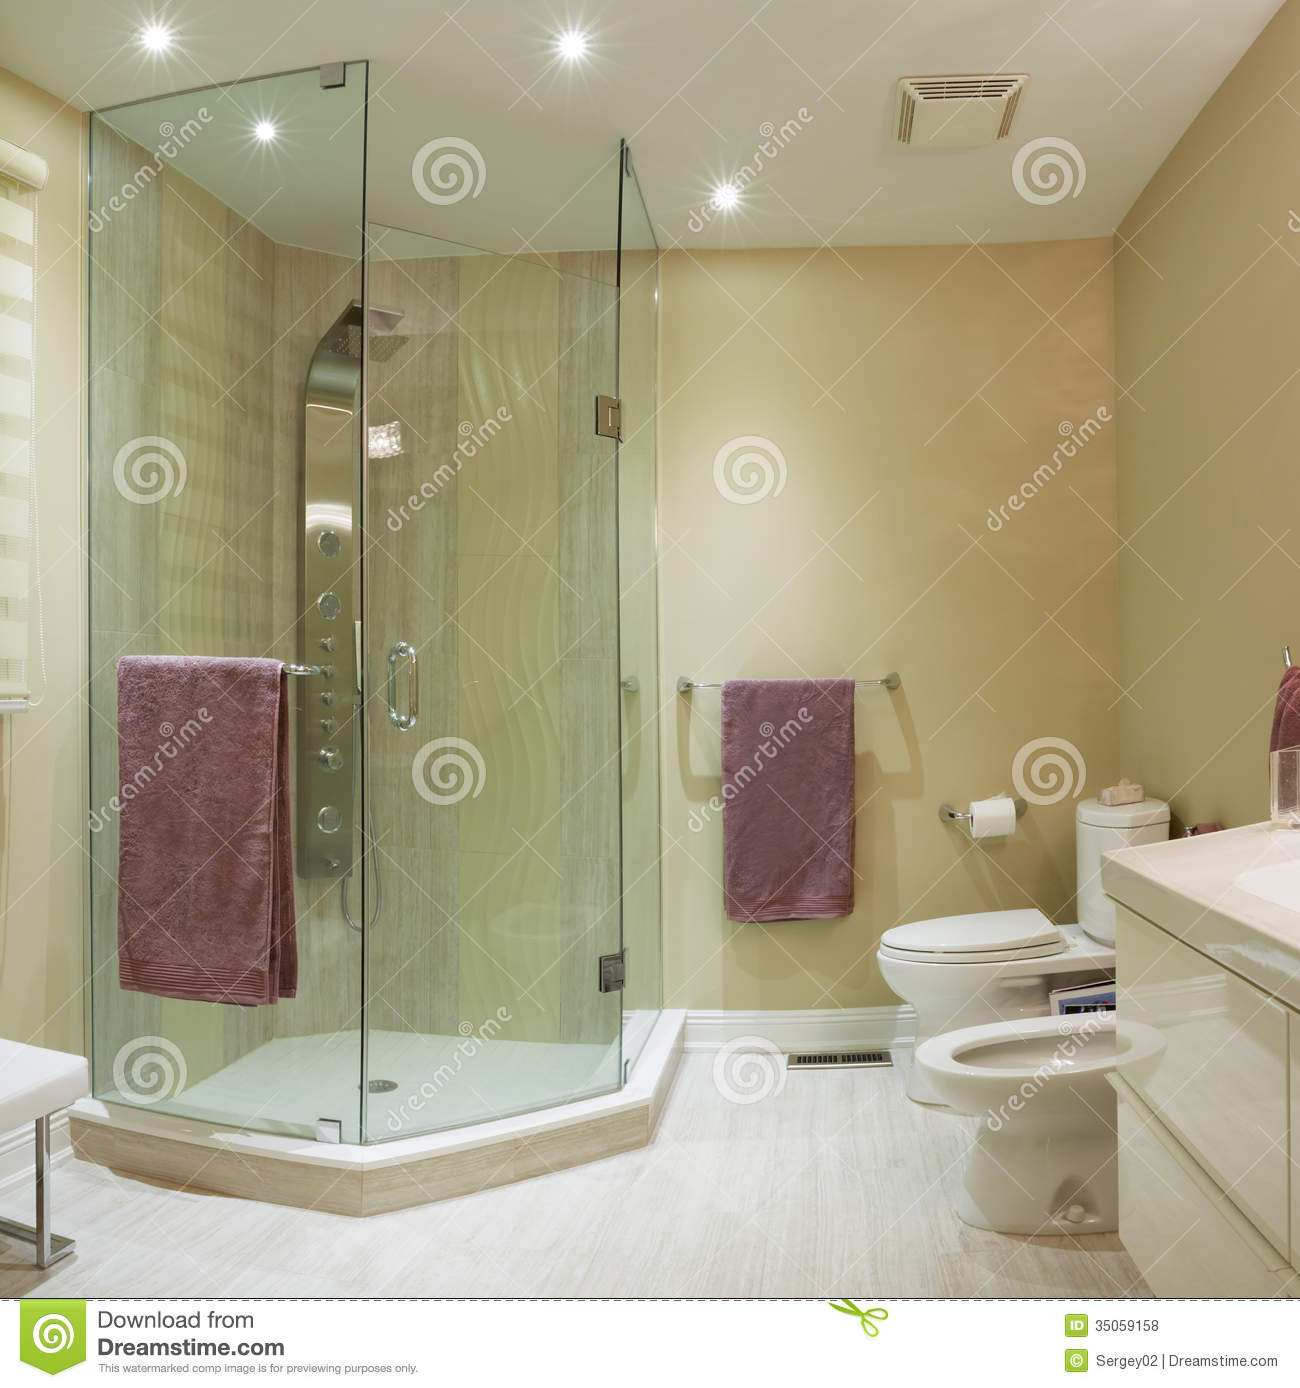 Interior Design Stock Photo. Image Of Floor, Household